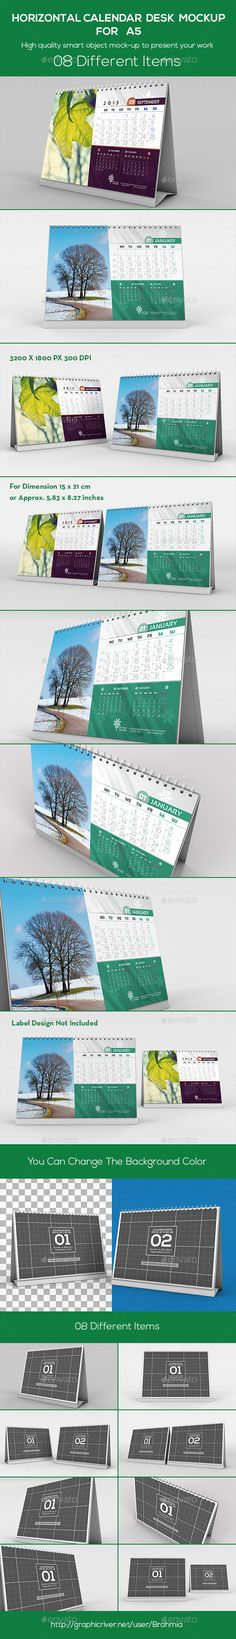 Horizontal Calendar Desk Mockup For A5 | Download: http://graphicriver.net/item/horizontal-calendar-desk-mockup-for-a5/9369043?ref=ksioks